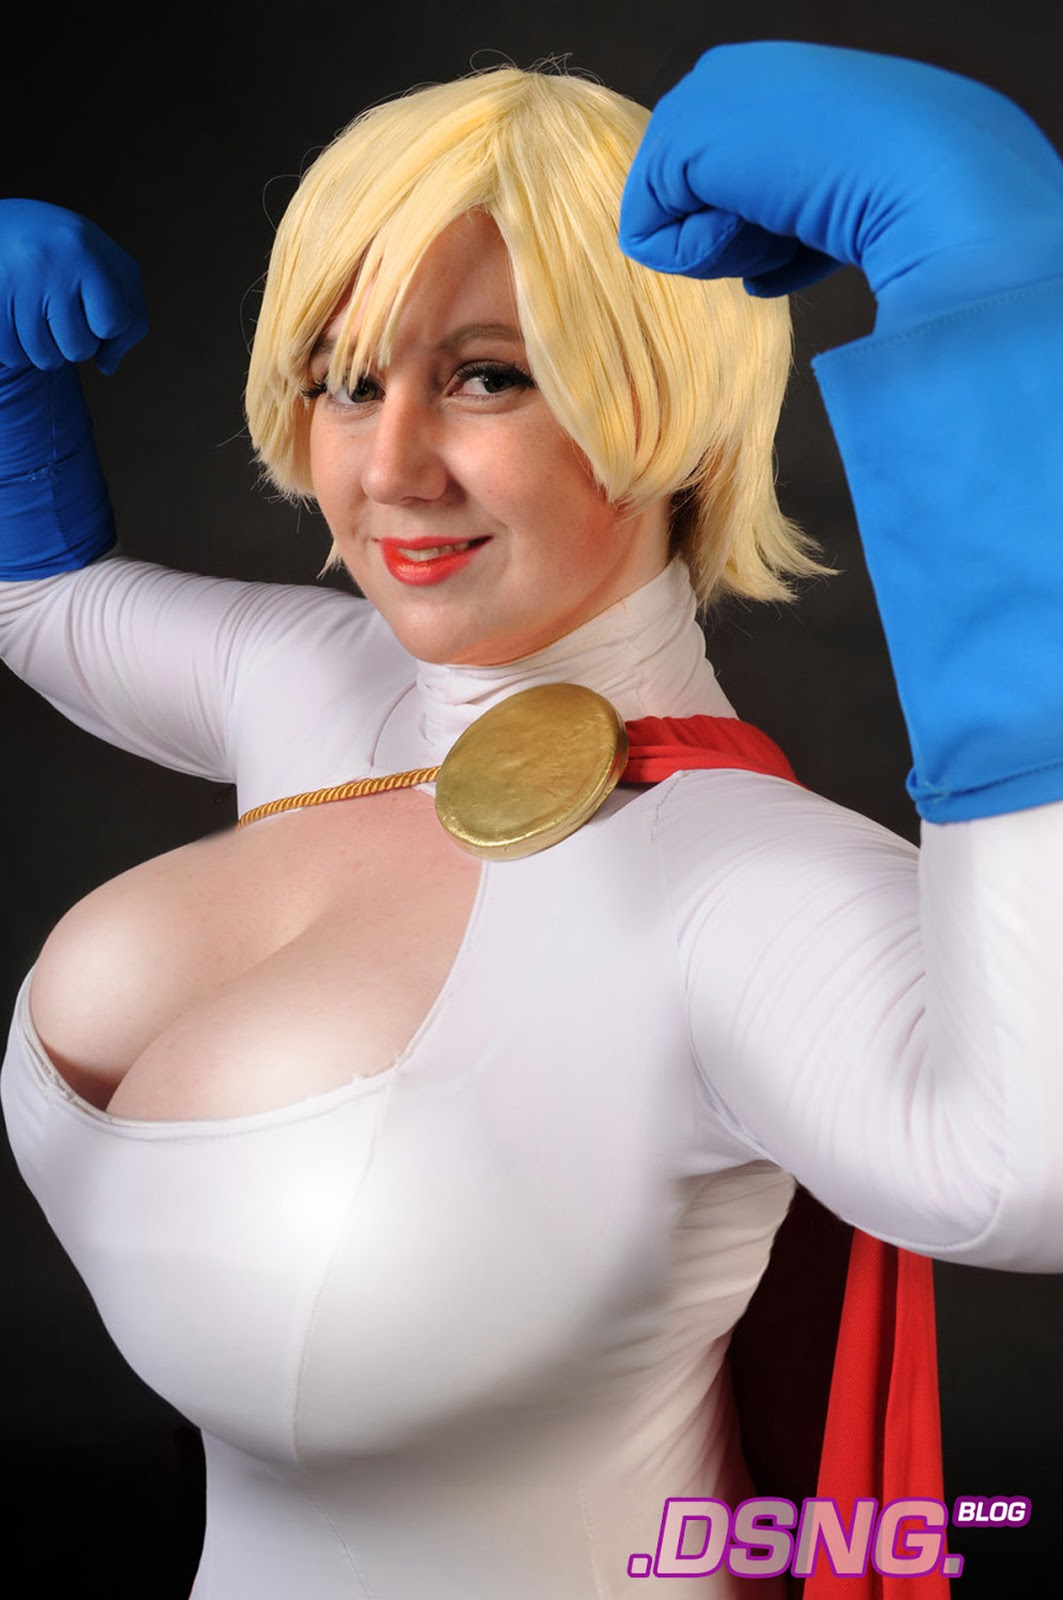 Dsngs Sci Fi Megaverse Supergirl And Powergirl, 2013 San -4083